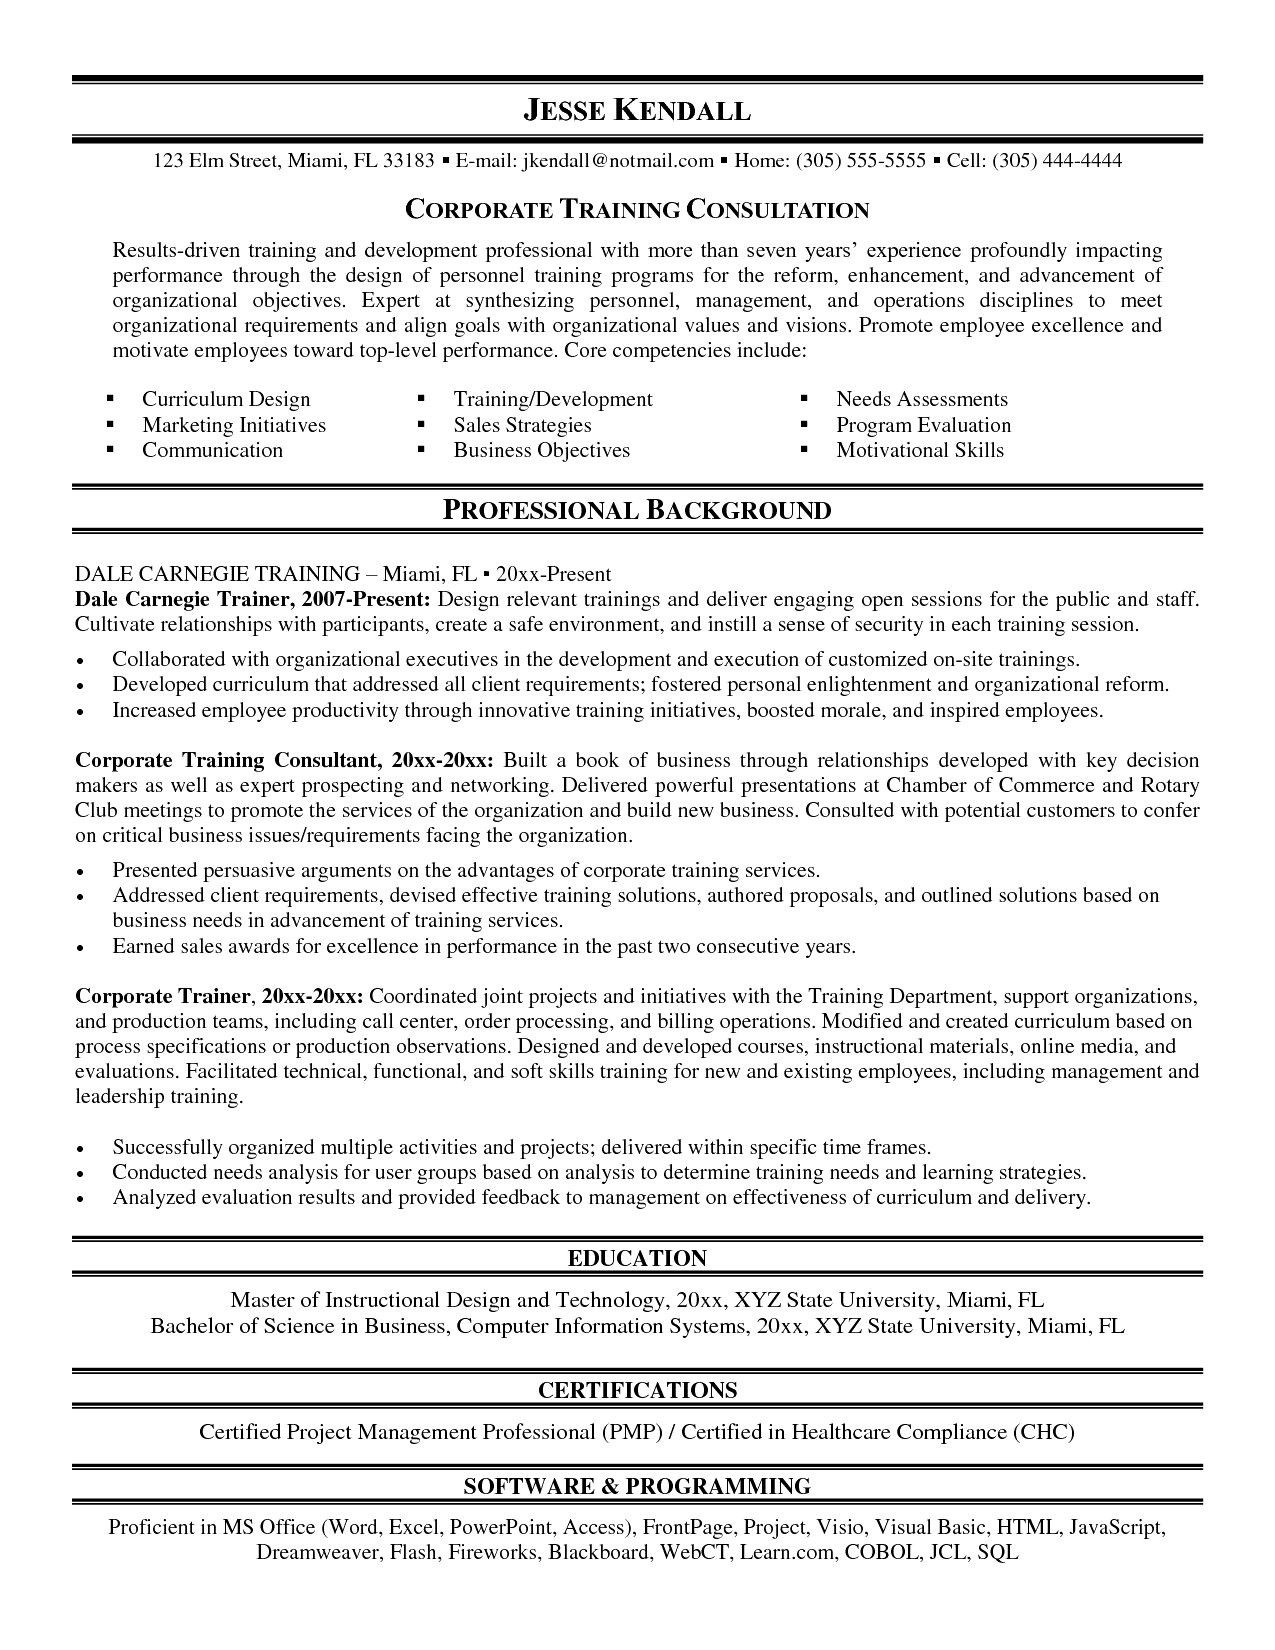 80 Unique Photos Of Resume Education Examples Associate 039 S Degree